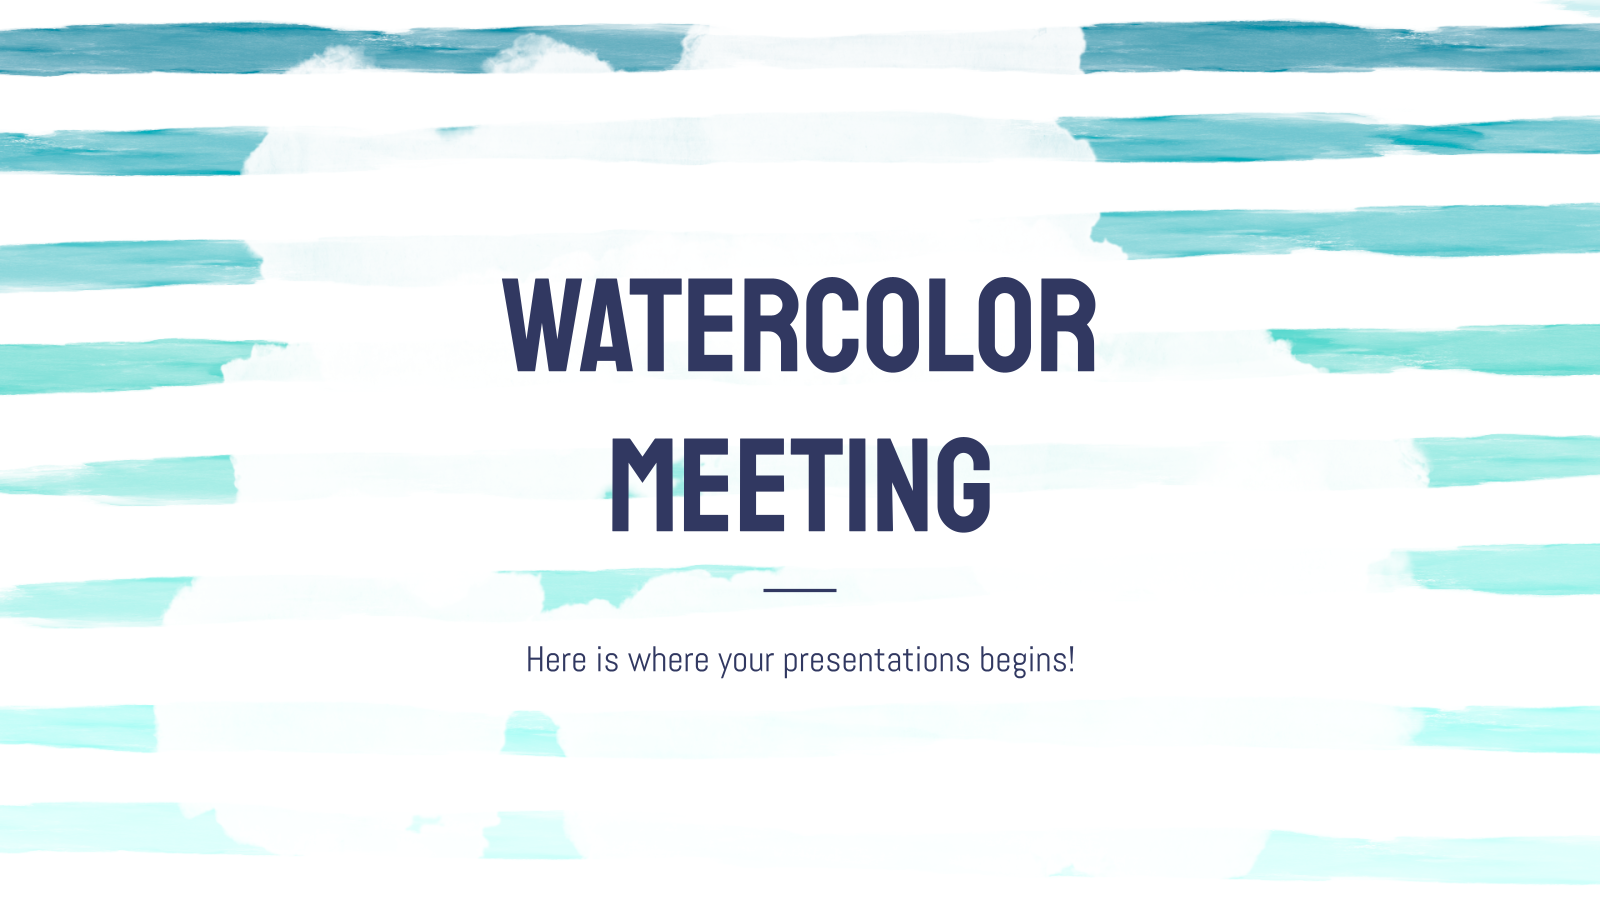 Watercolor Meeting presentation template